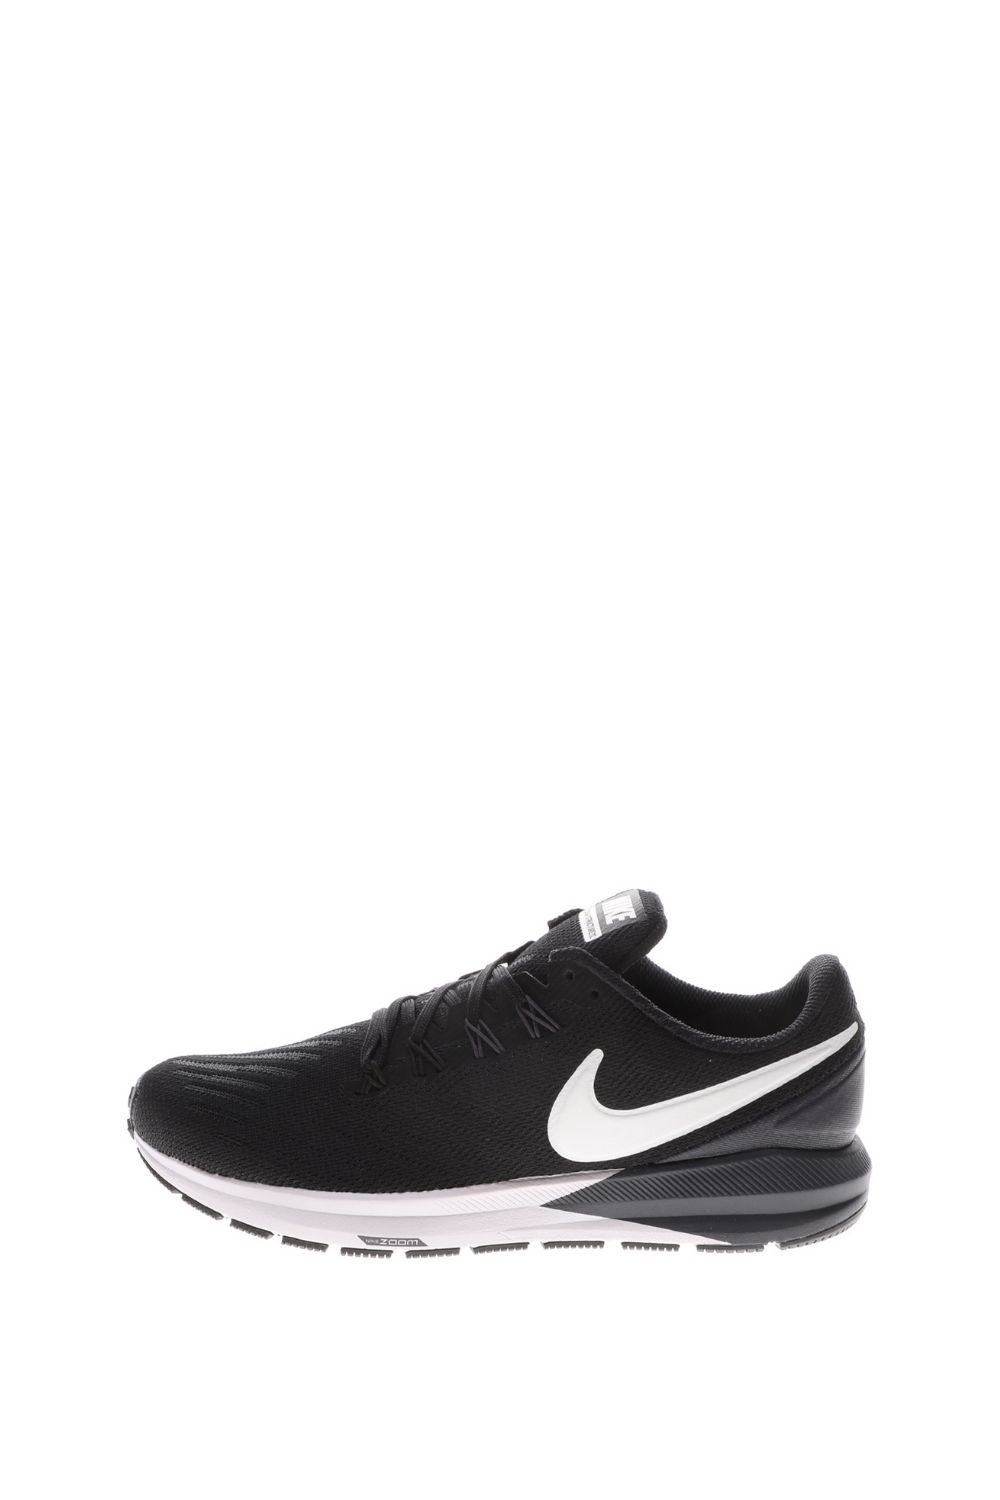 NIKE – Ανδρικά παπούτσια running NIKE AIR ZOOM STRUCTURE 22 μαύρα